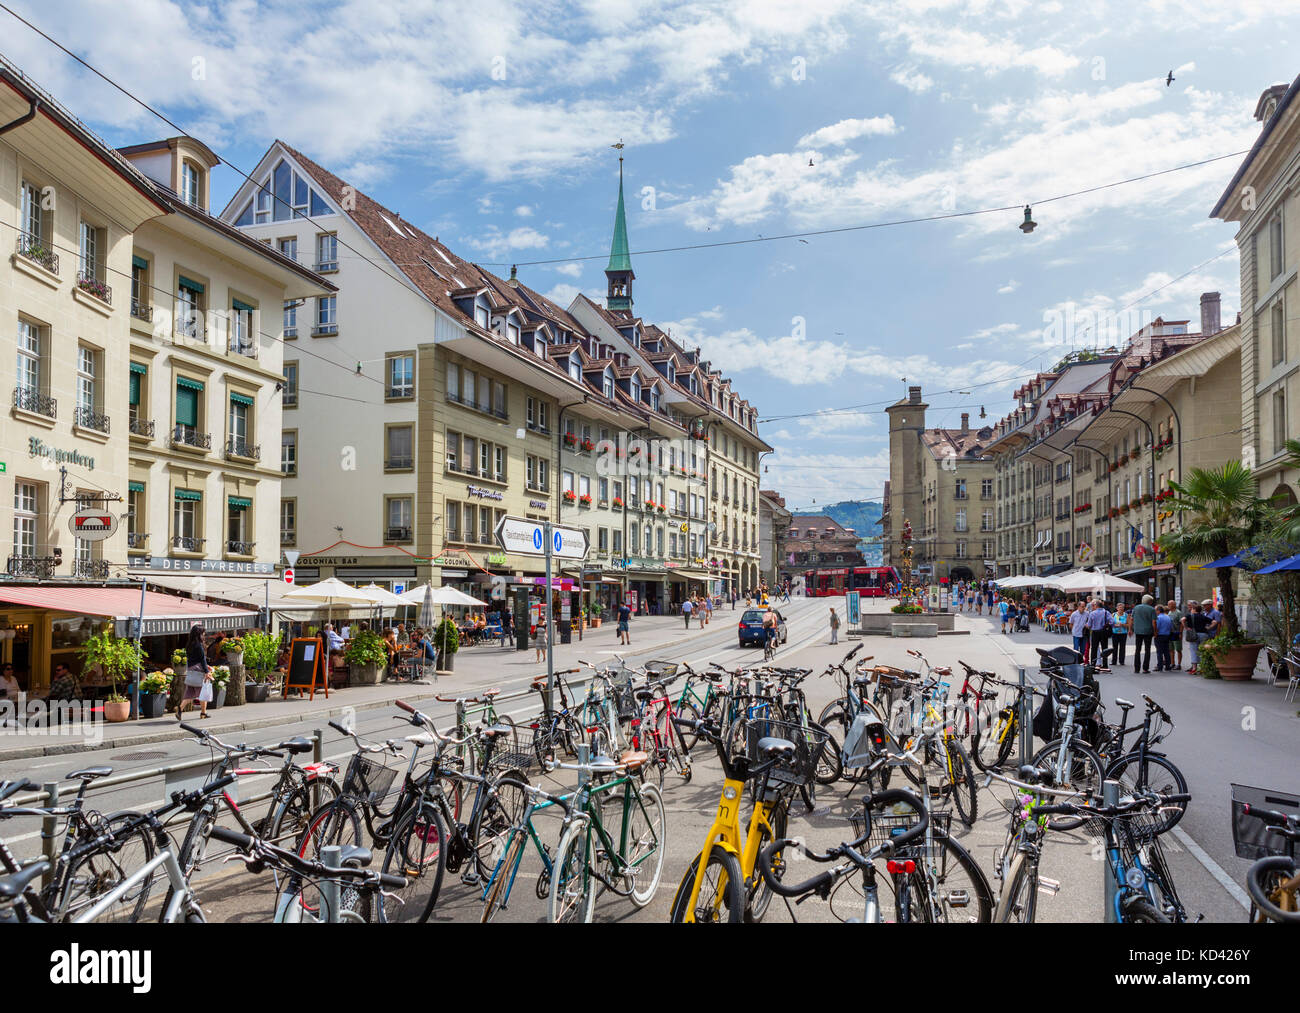 Kornhausplatz in the city centre, Bern (Berne), Switzerland - Stock Image